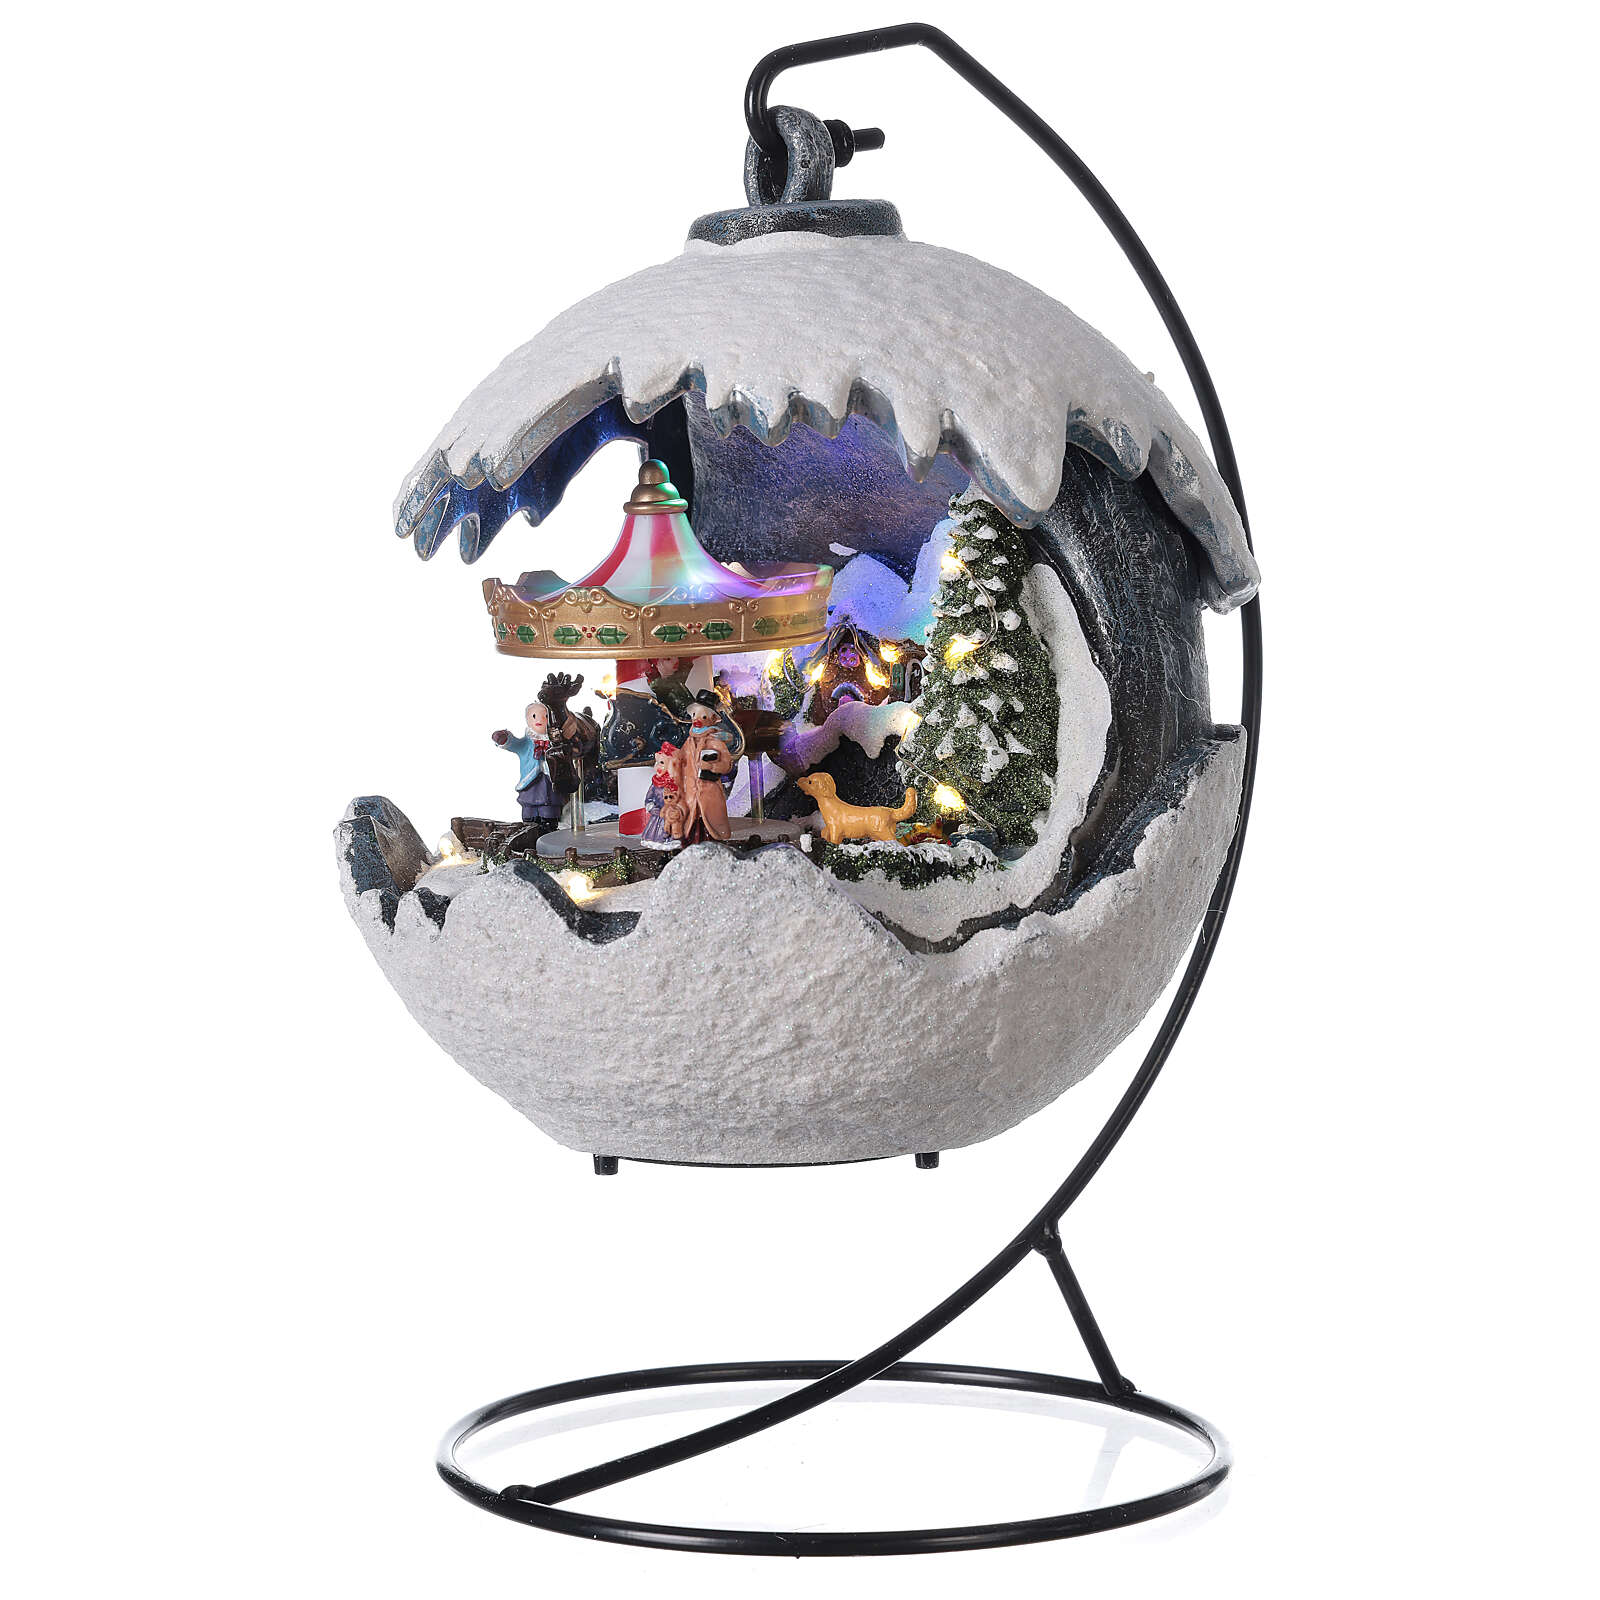 Christmas village snowball horse carousel music with base 20x20x20 cm 3